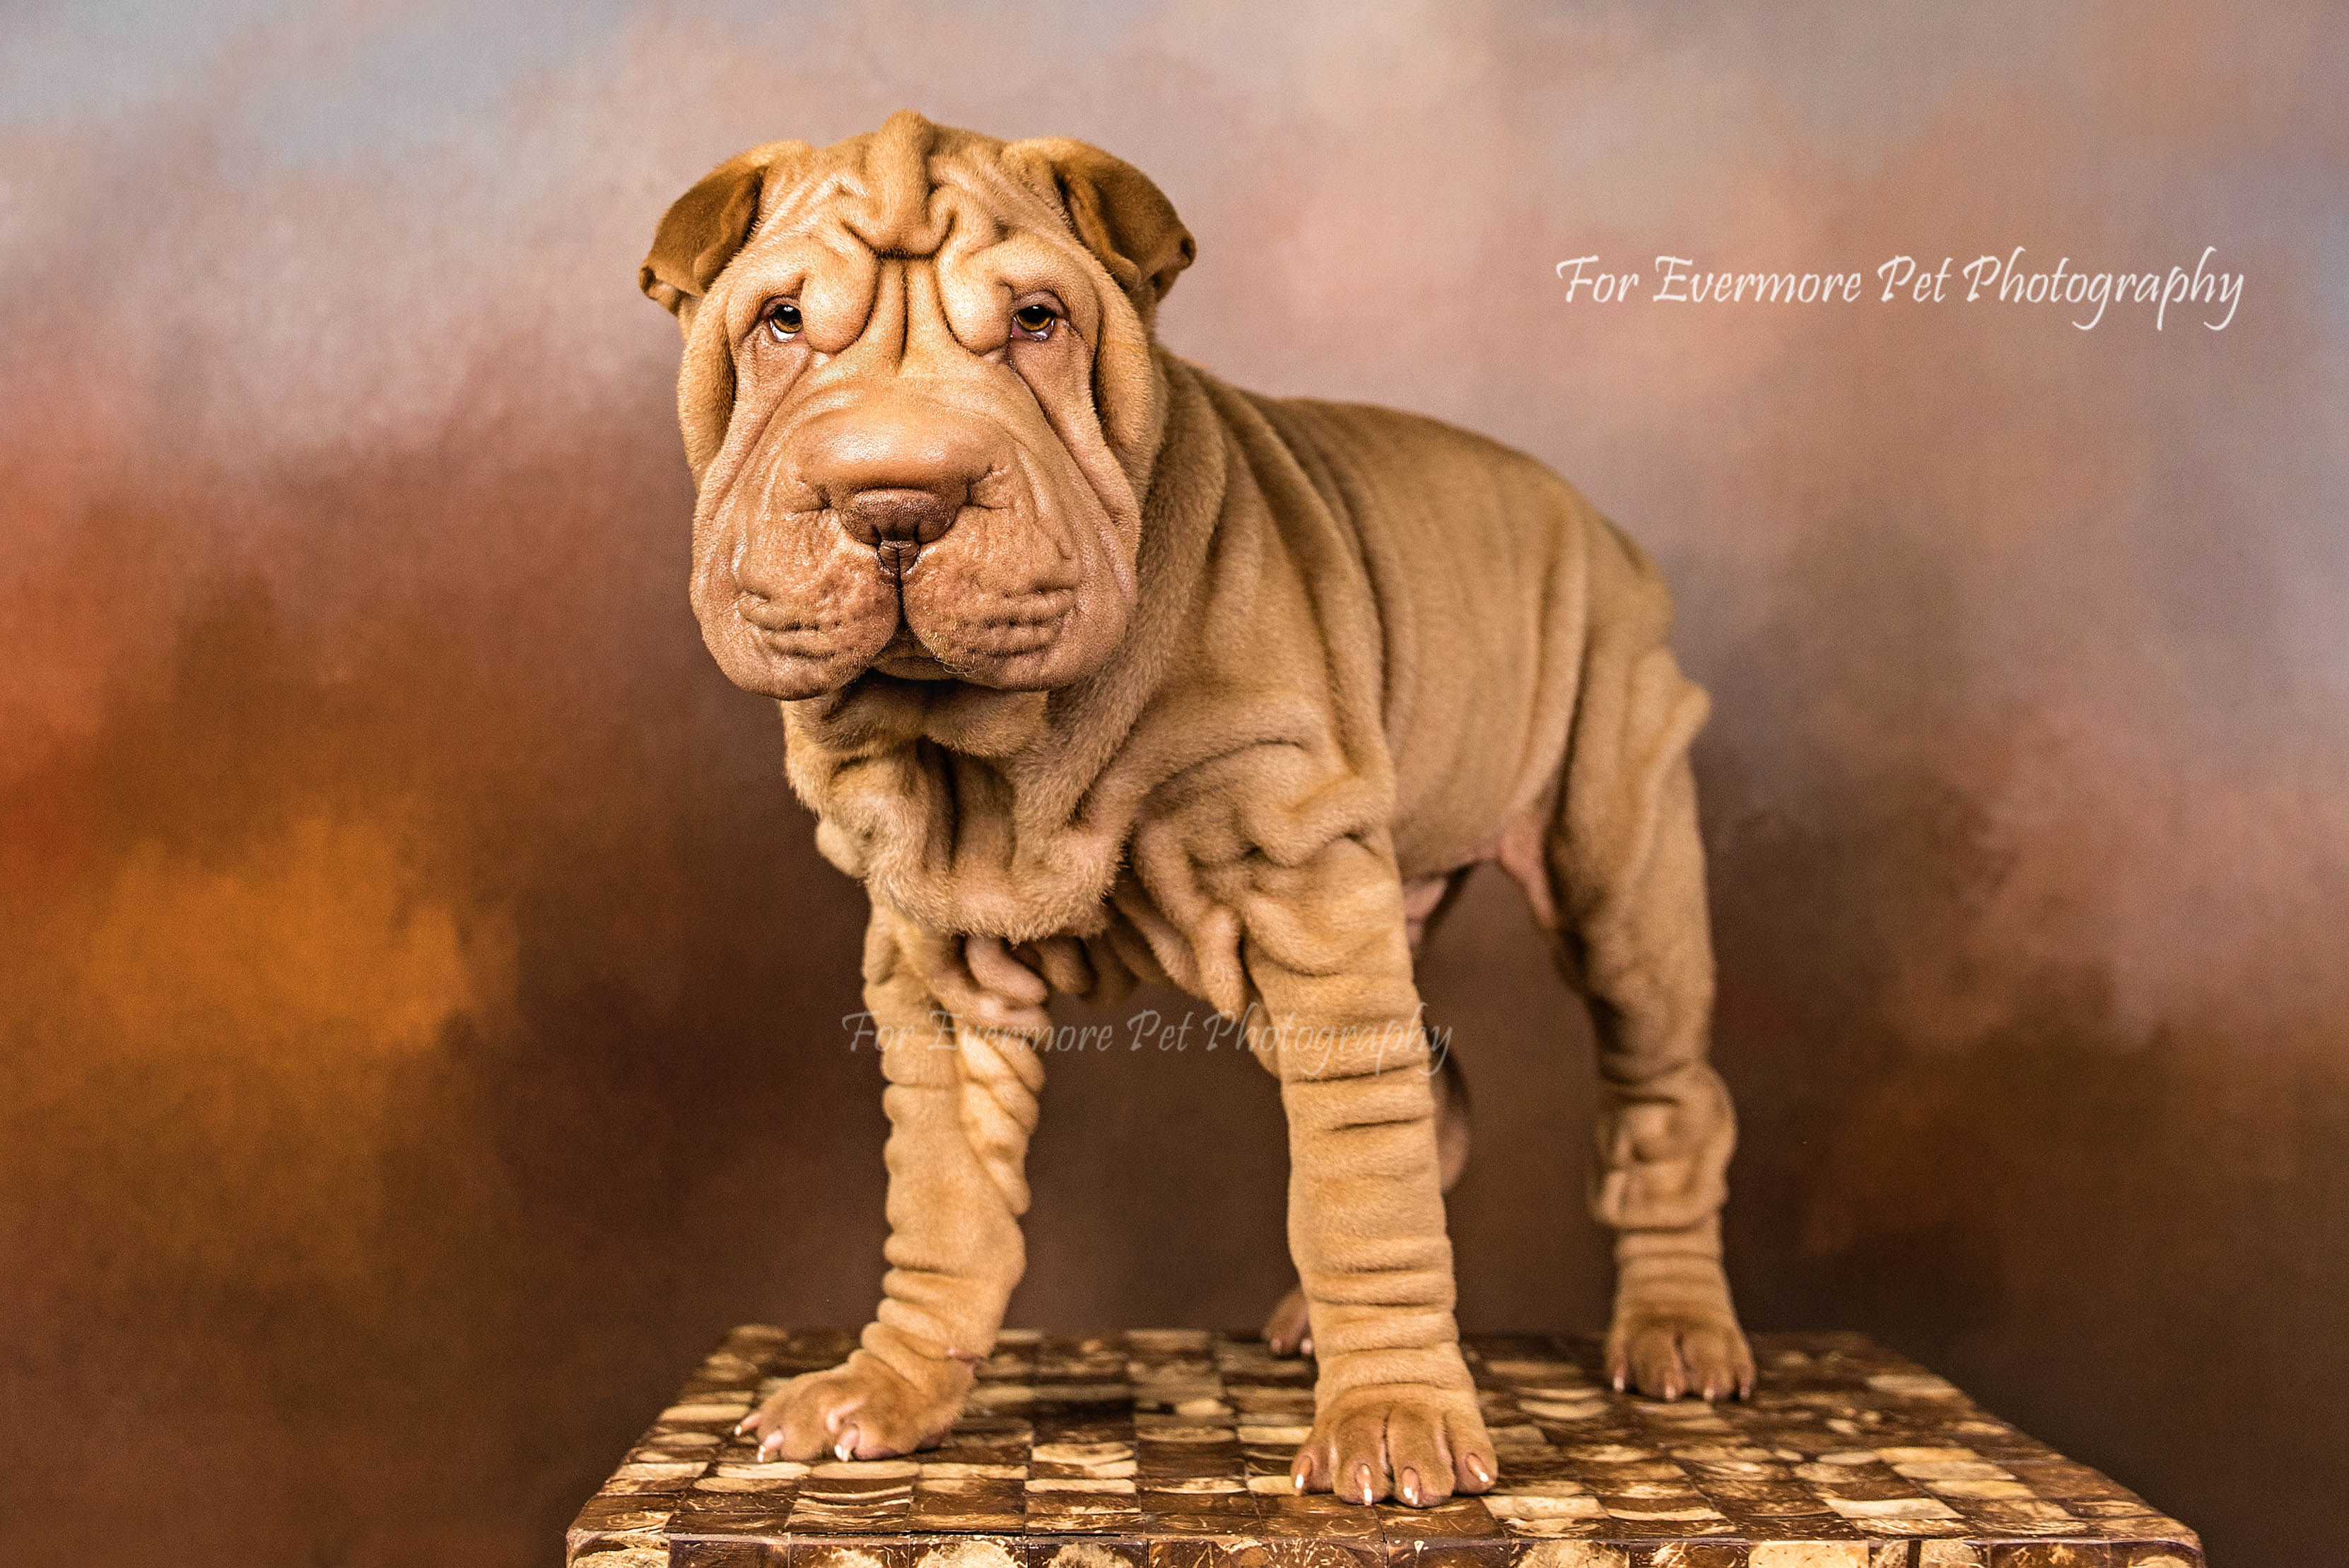 Teddy the Shar Pei